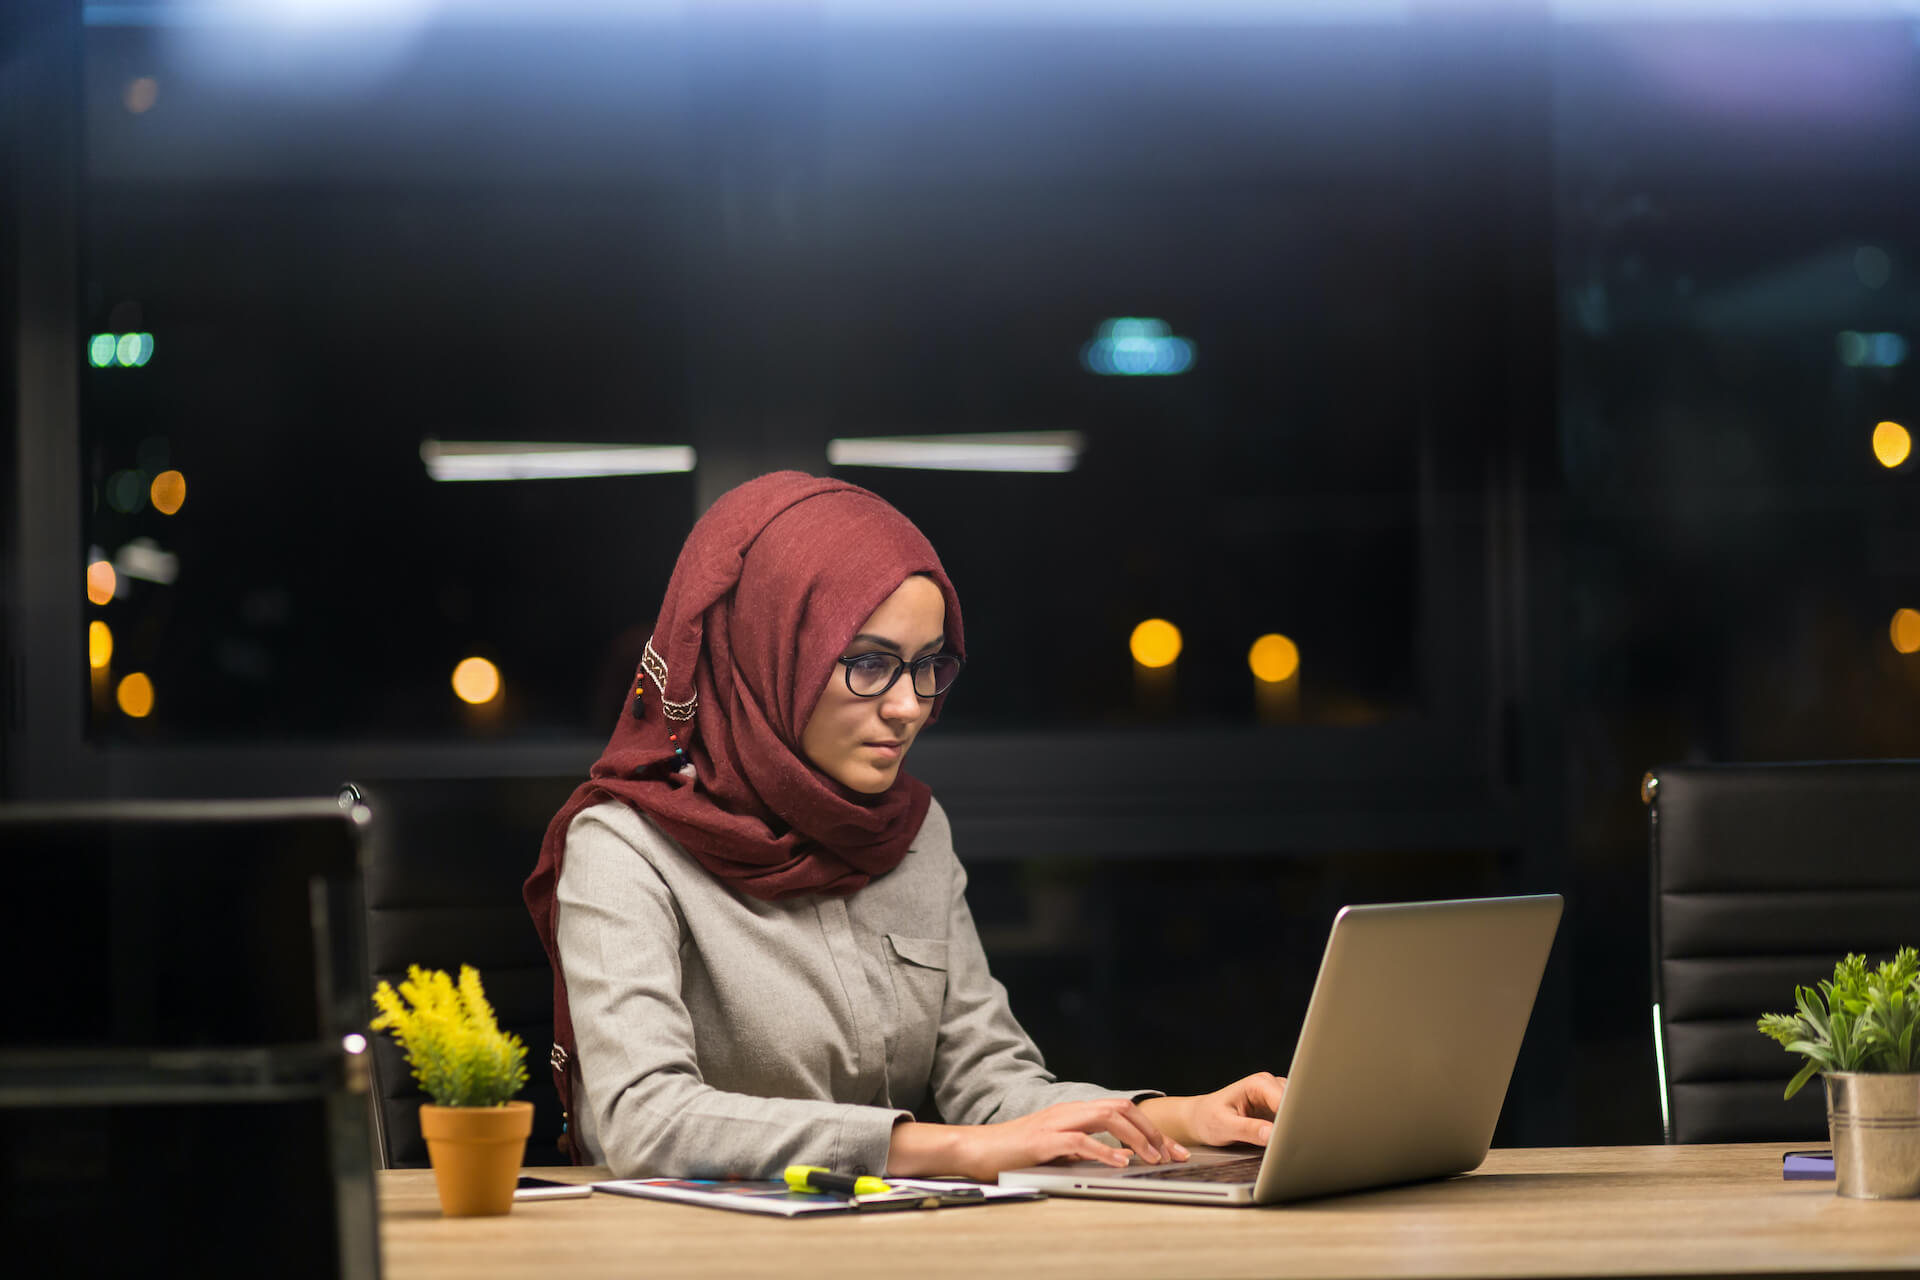 woman wearing a hijab working at an office